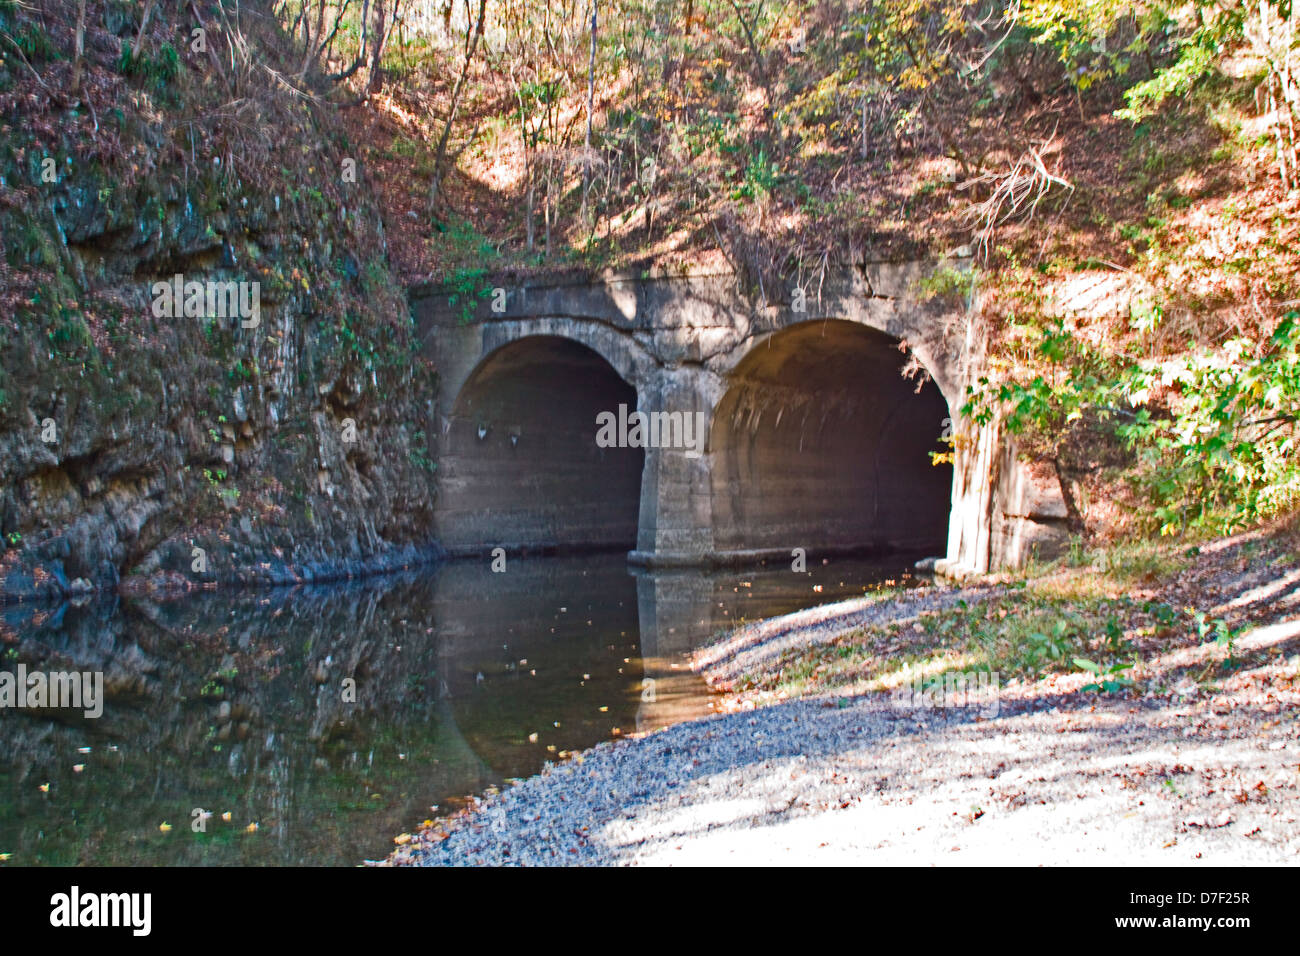 Fifteen Mile Creek flowing through duel stone culverts under